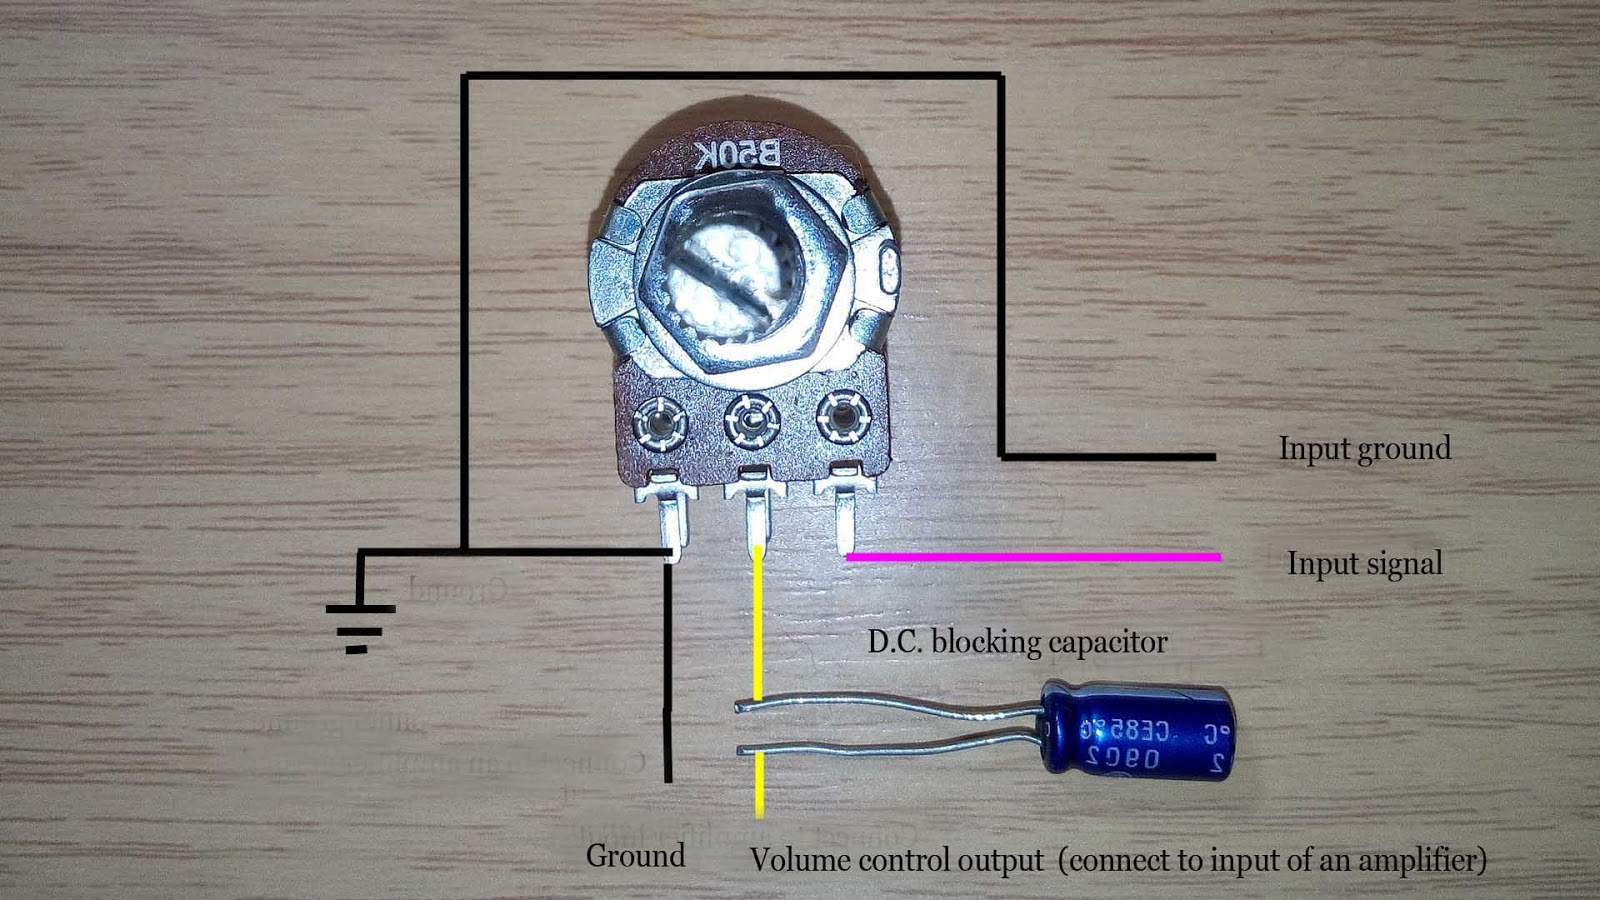 how to connect volume control to an amplifier rh easyandworkproject xyz Potentiometer Wiring Guide 3-Pin Slide Potentiometer Wiring